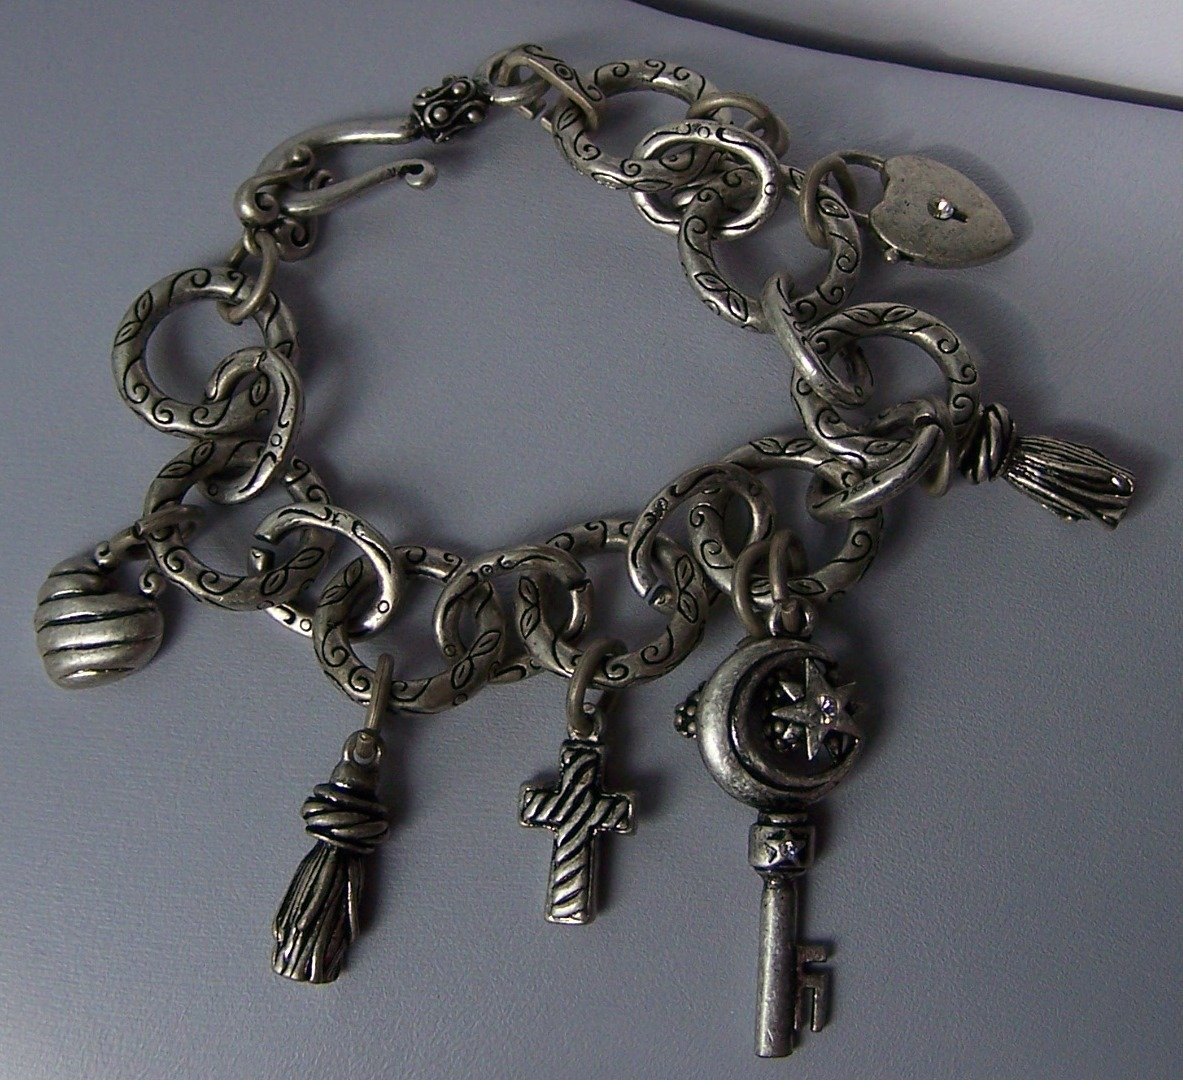 Burnished Key Keys Cross Heart Locket Charm Bracelet